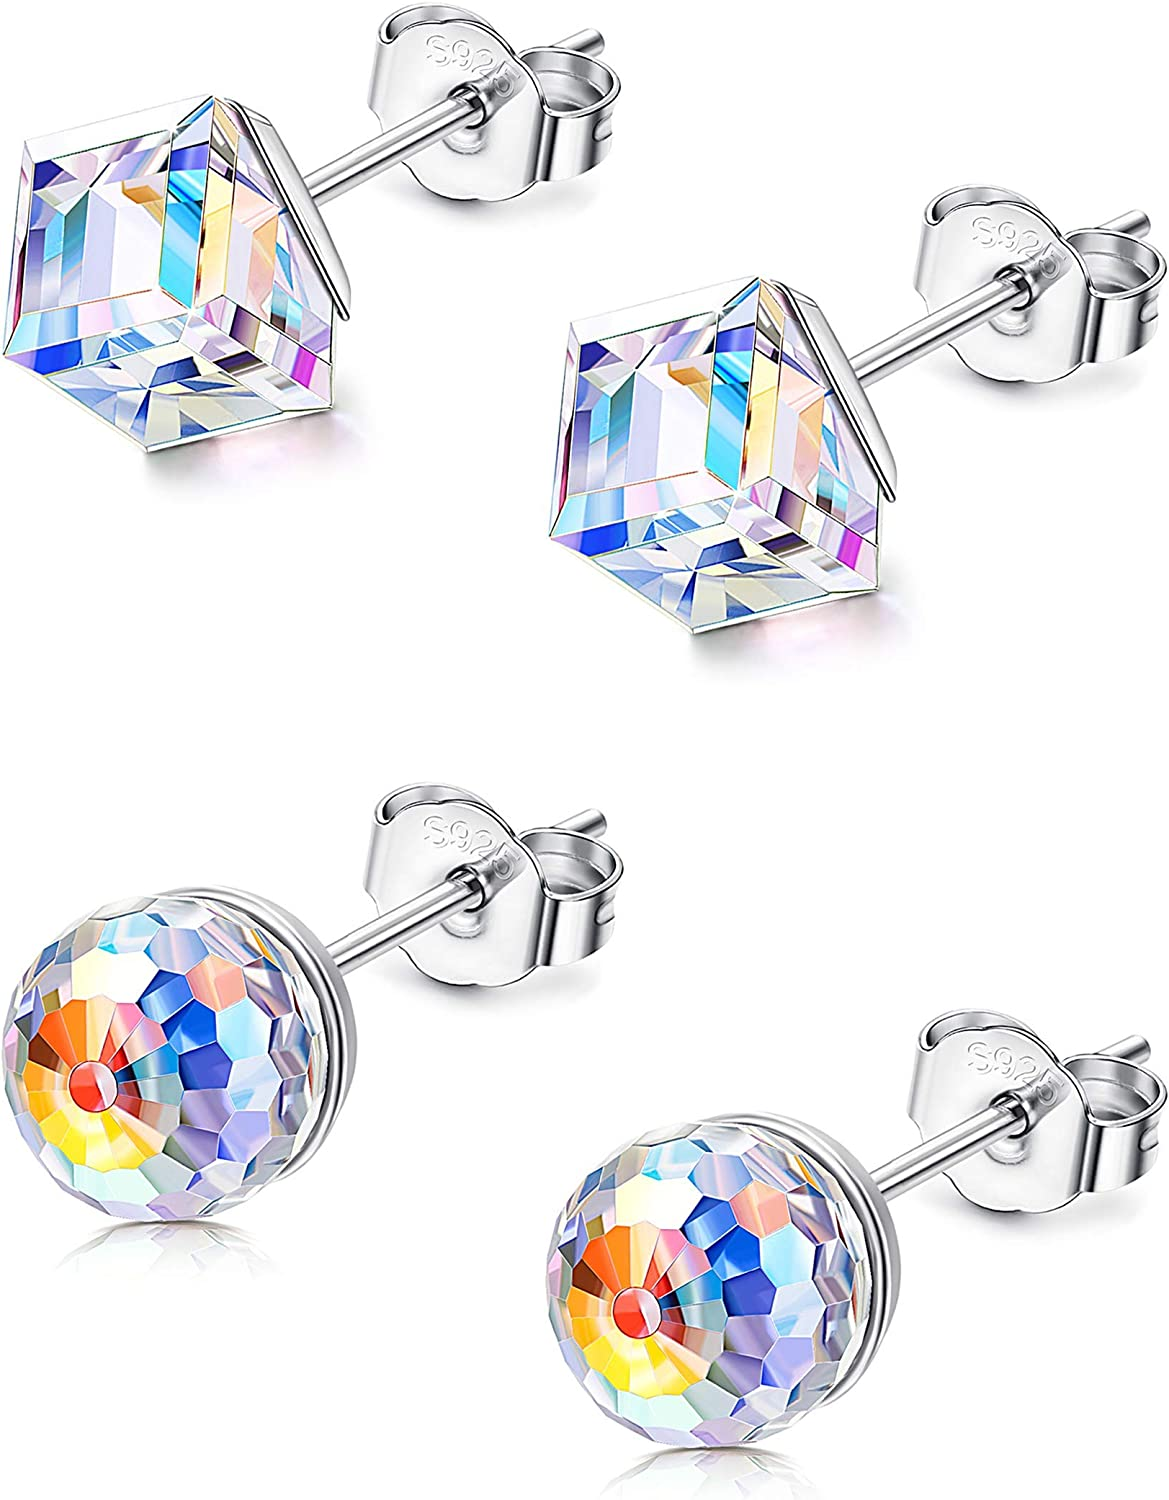 Sllaiss 2Pairs Cube Ball Crystal Earrings Sterling Silver with Aurora Crystals from Swarovski Valentine's Day Gifts for Her Fine Jewelry with Box